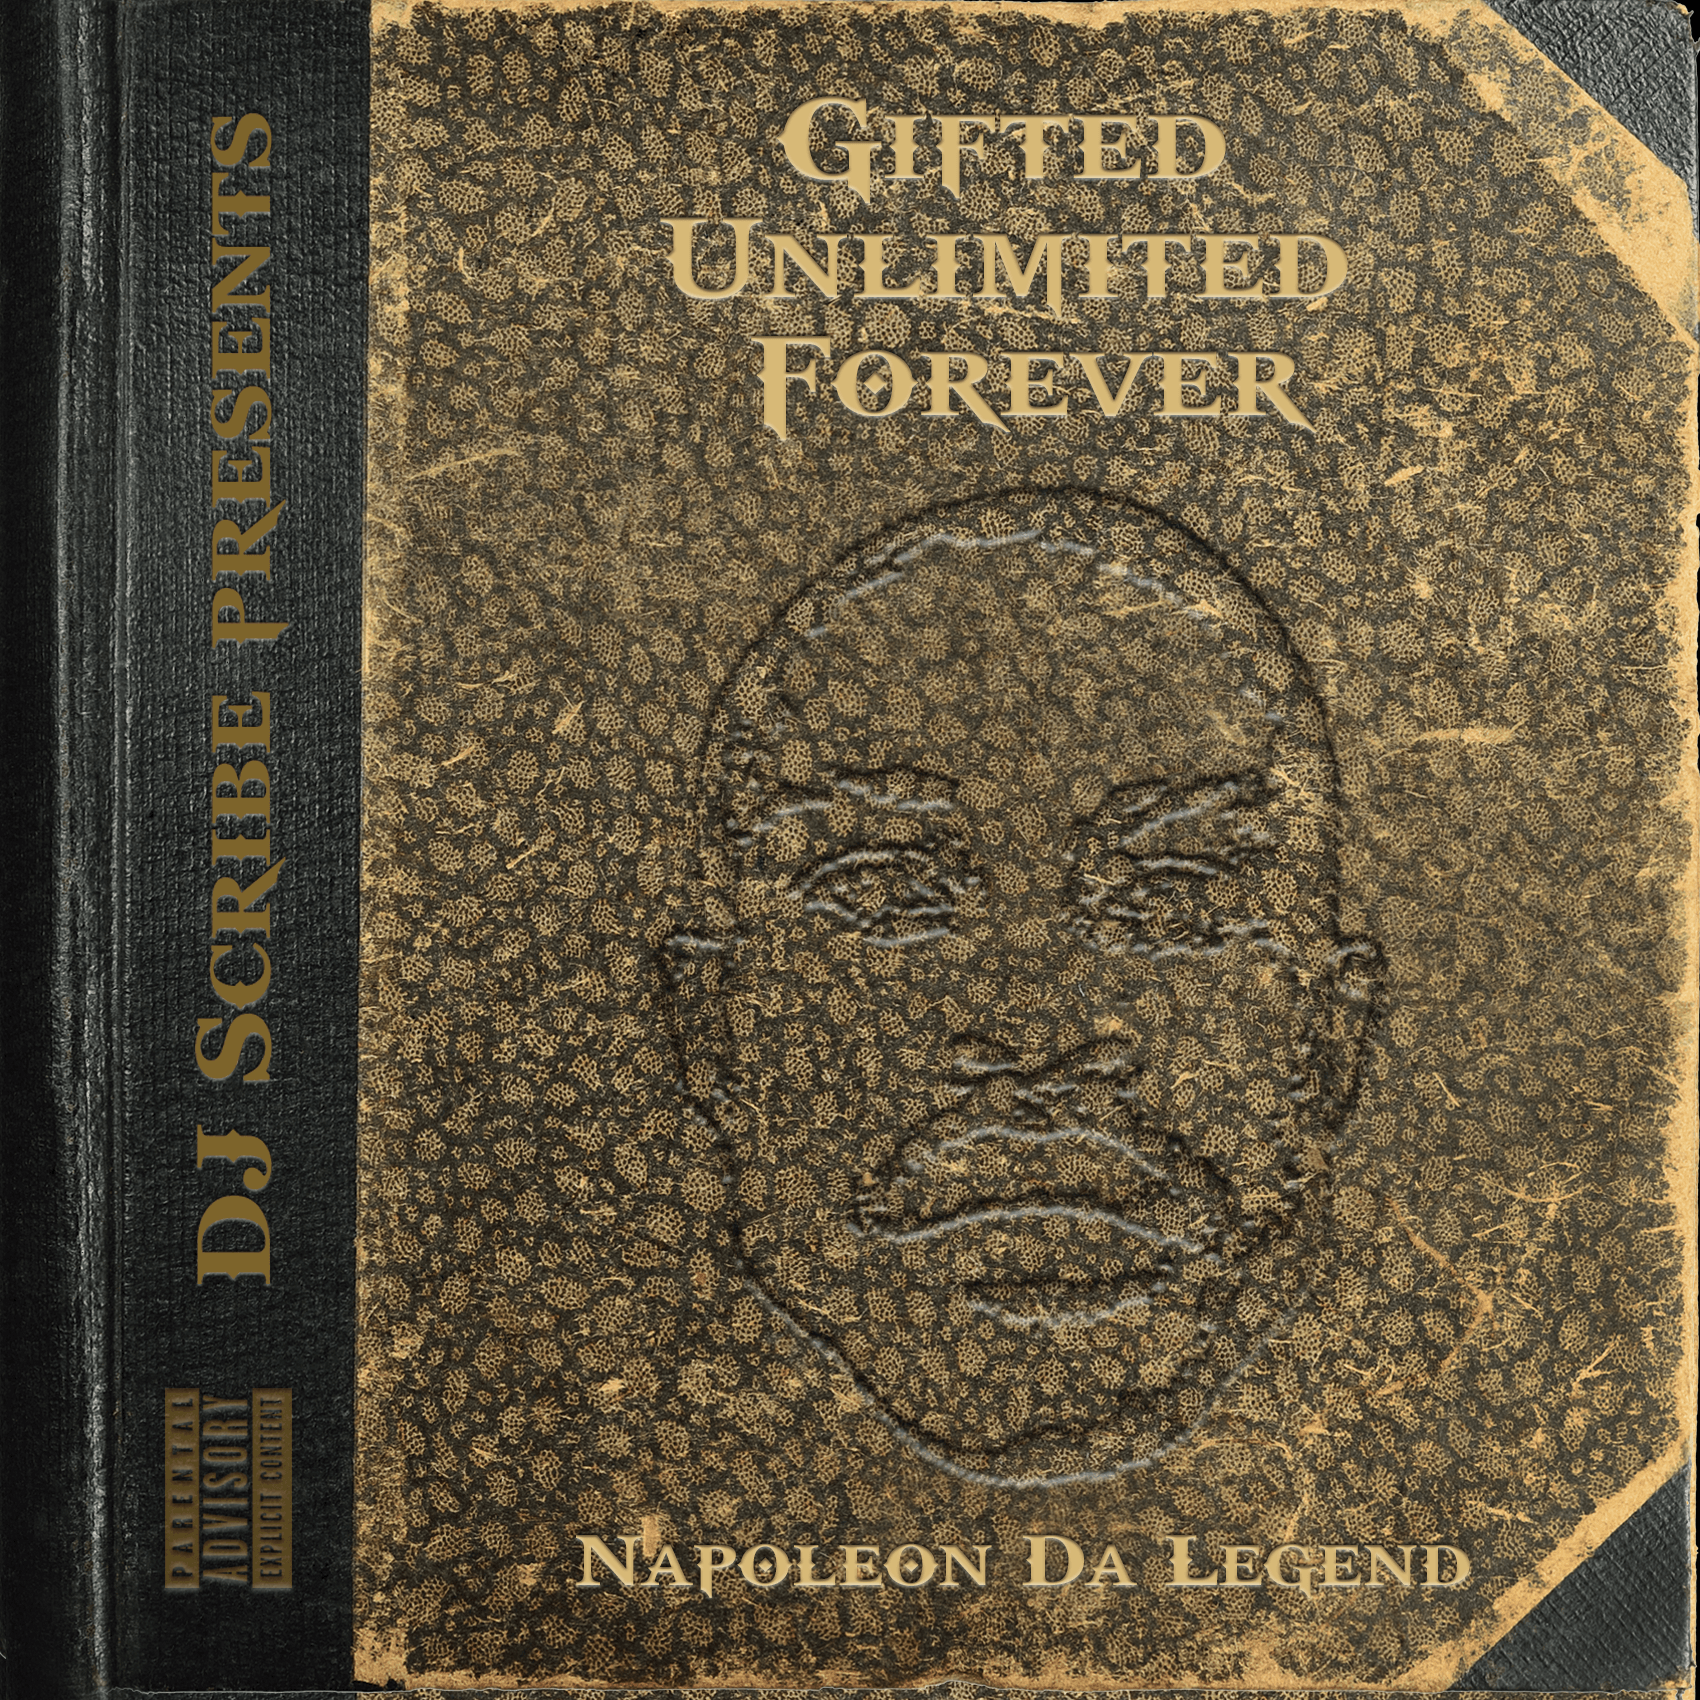 GIFTED UNLIMITED FOREVER    BUY CD